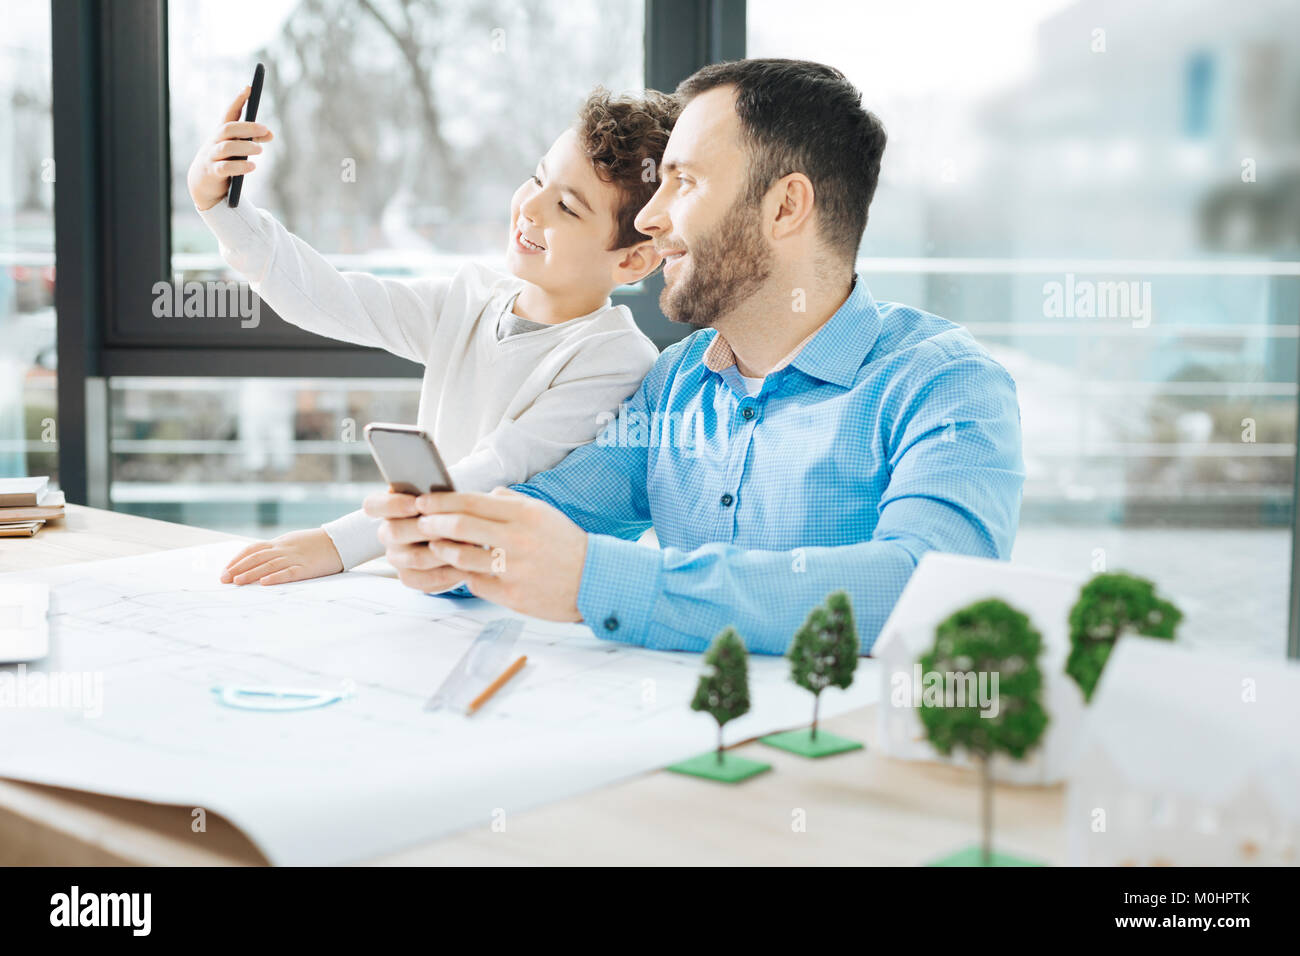 Cheerful boy taking a selfie with his father at work - Stock Image